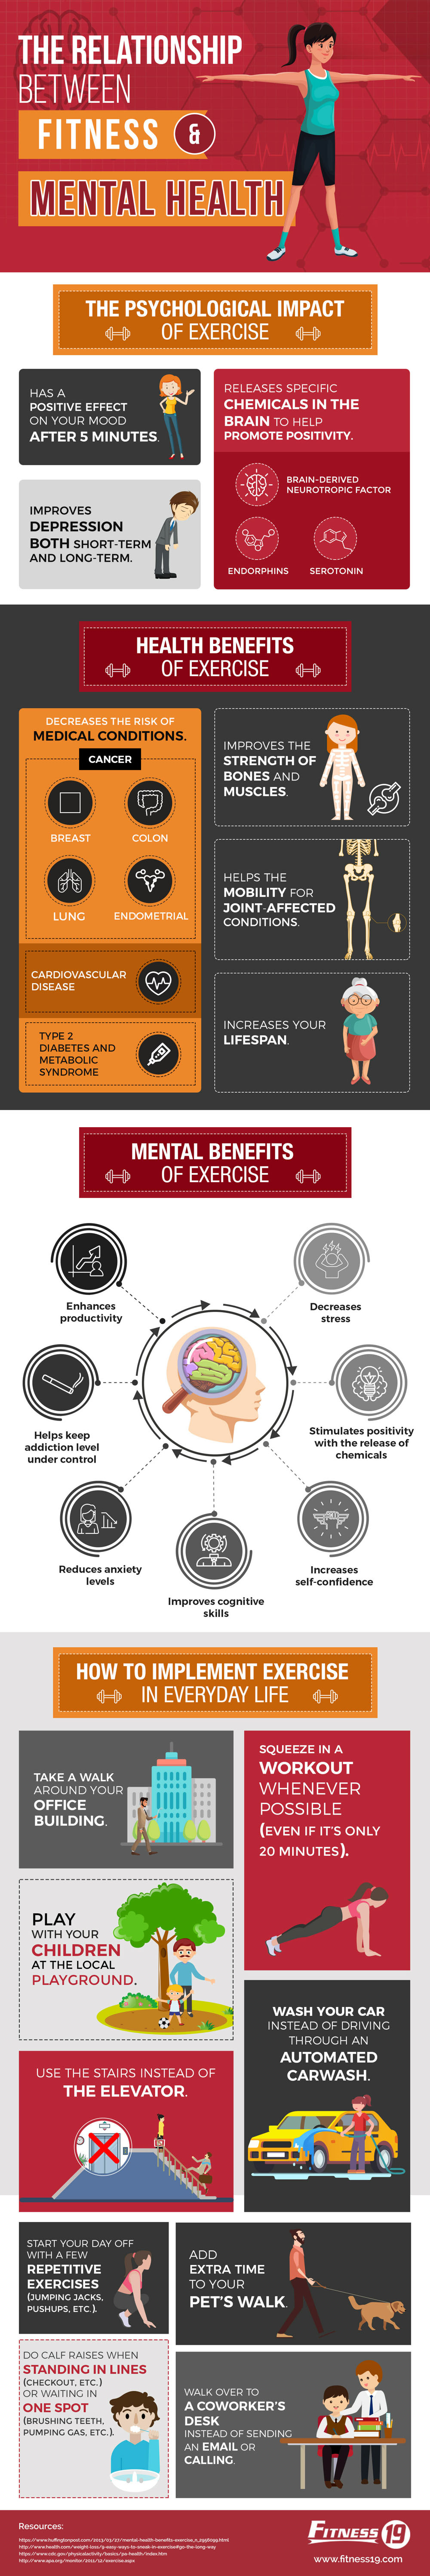 Physical Fitness and Mental Health: A Symbiotic Relationship - Infographic